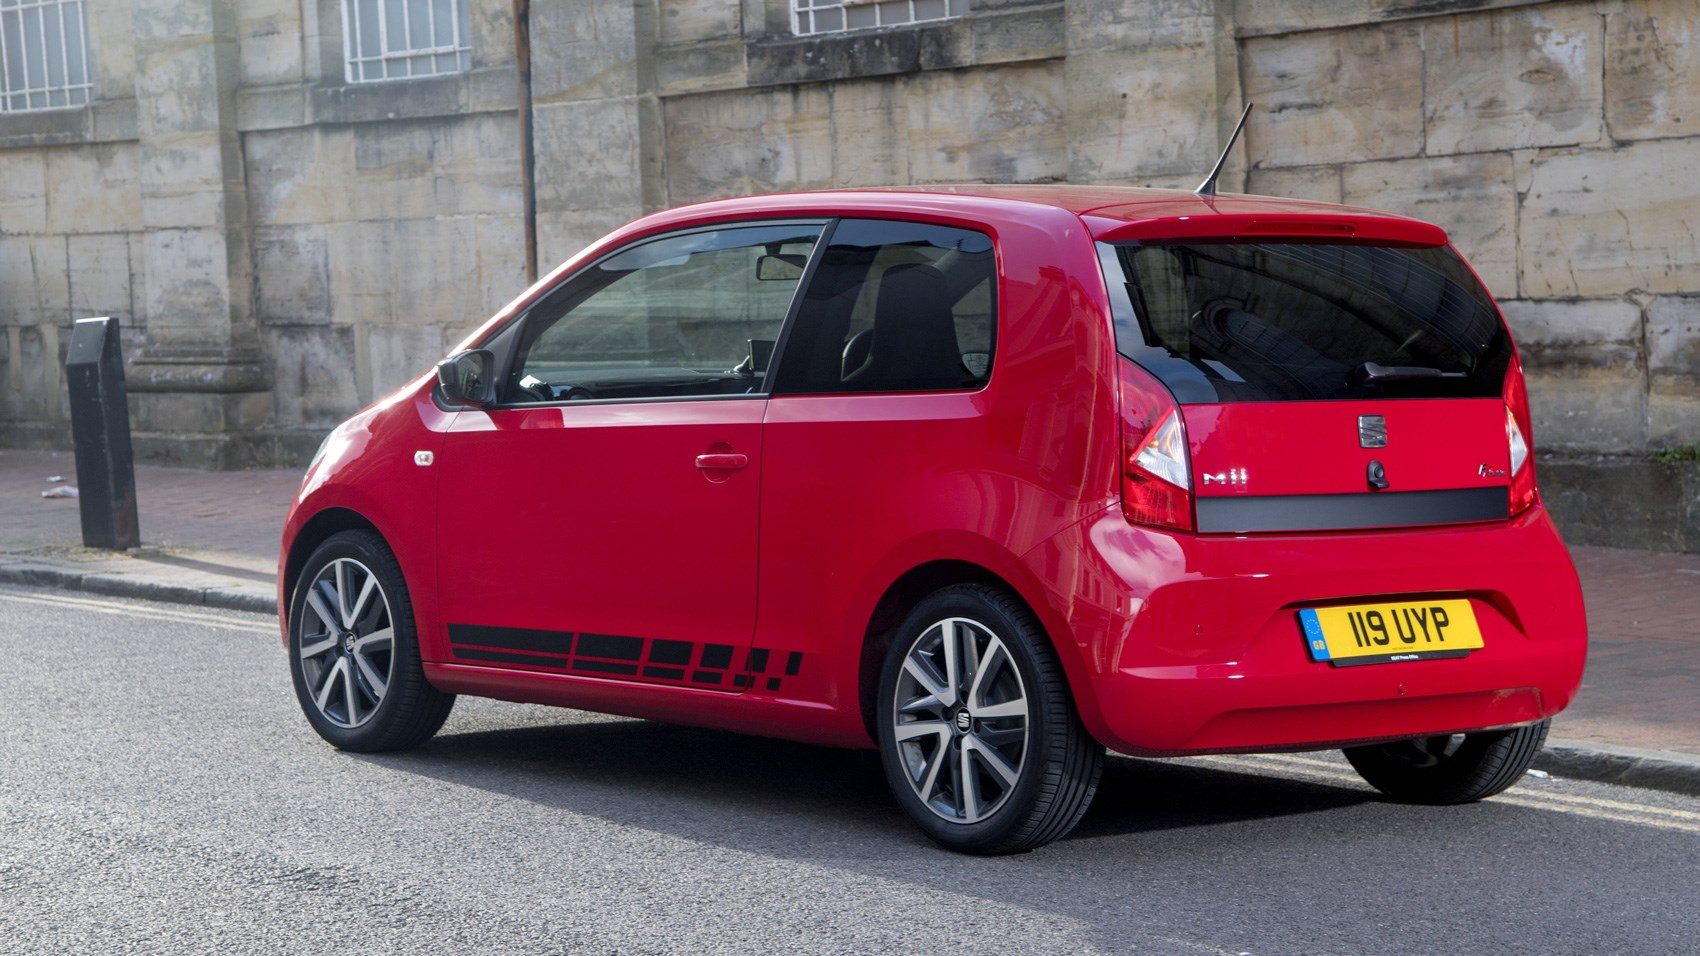 Seat Mii Fr Line Door as well Seat Leon F Hr Fjedre also Seat Concepts X additionally Px Seat Ibiza Fr Eco Tsi also Seat Leon. on seat mii